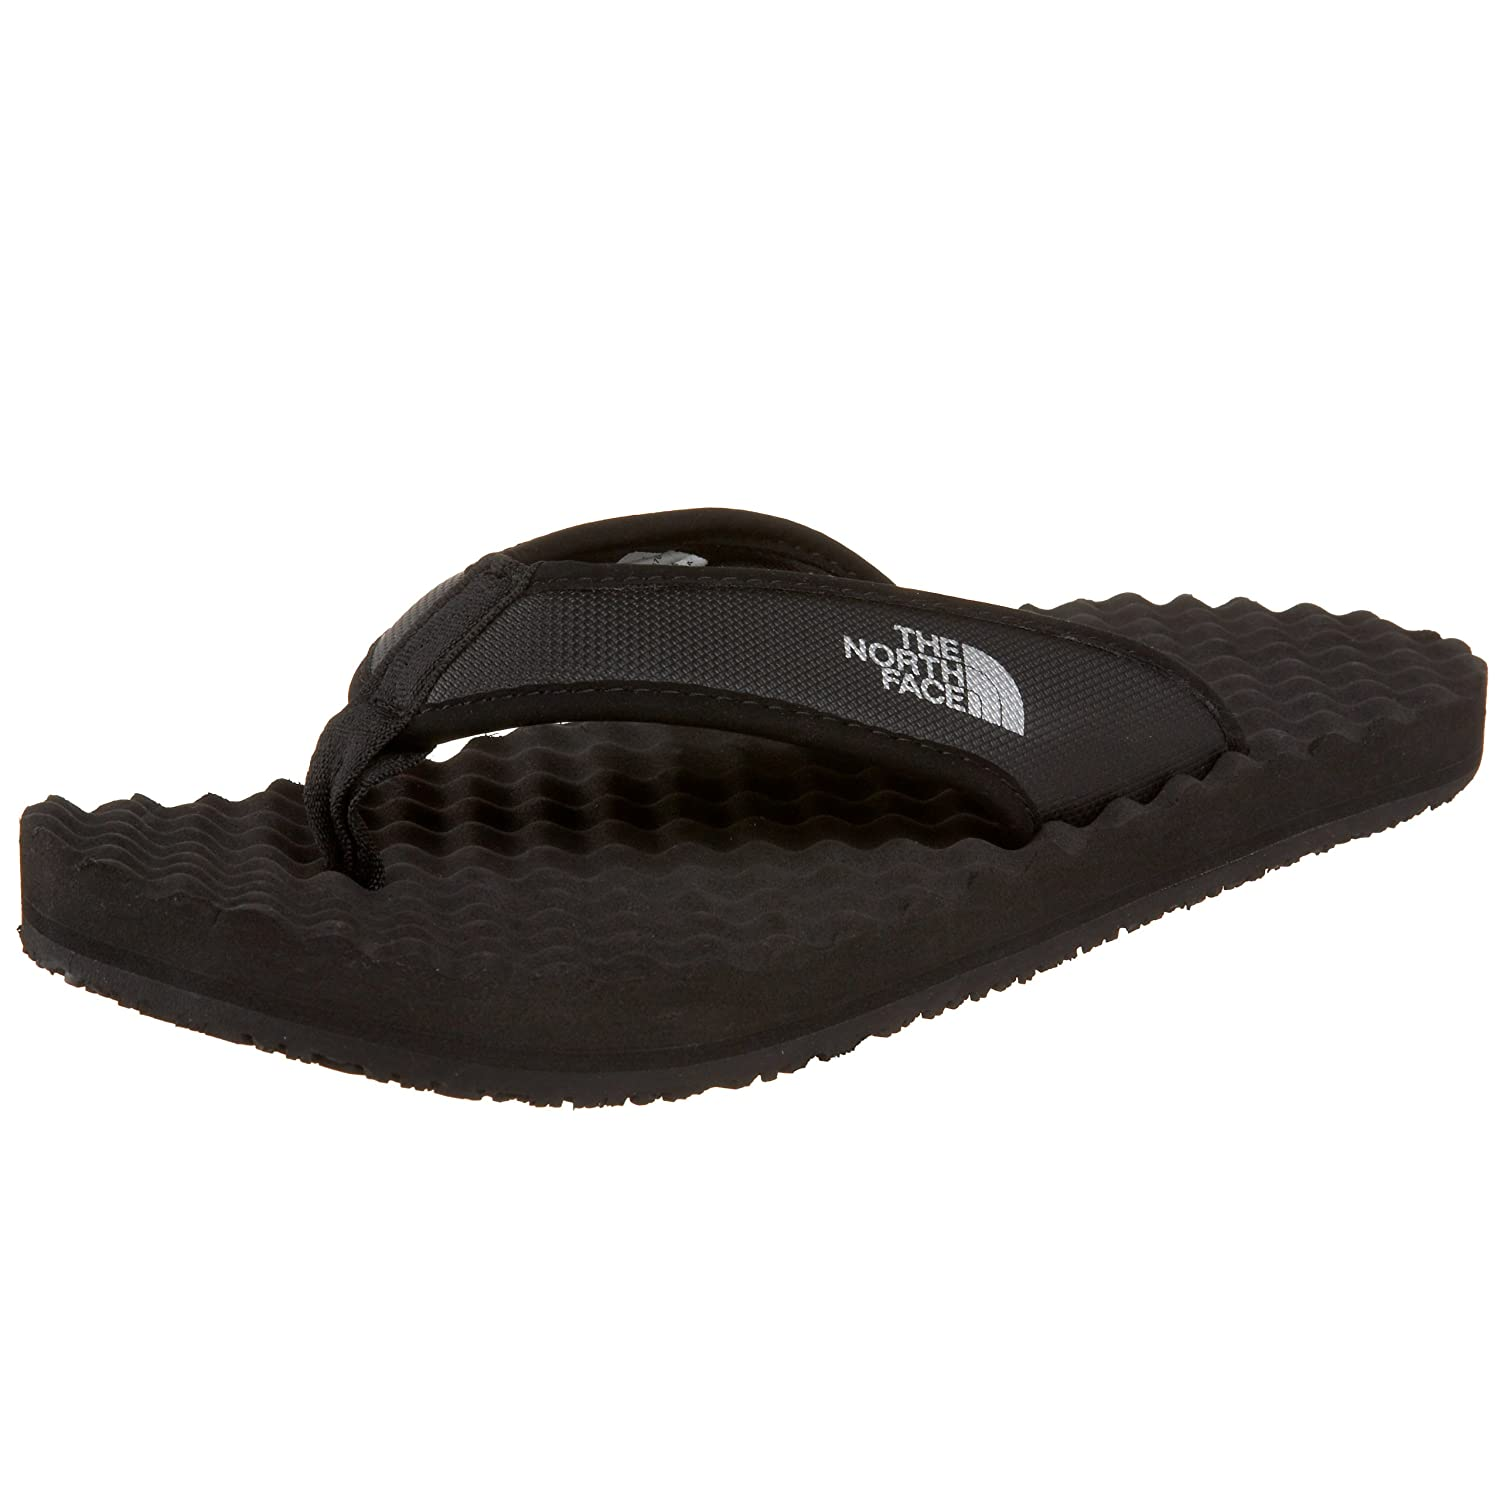 TALLA EU 43 (9 UK/10 US). The North Face M Basecamp Flipflop, Zapatos de Playa y Piscina para Hombre